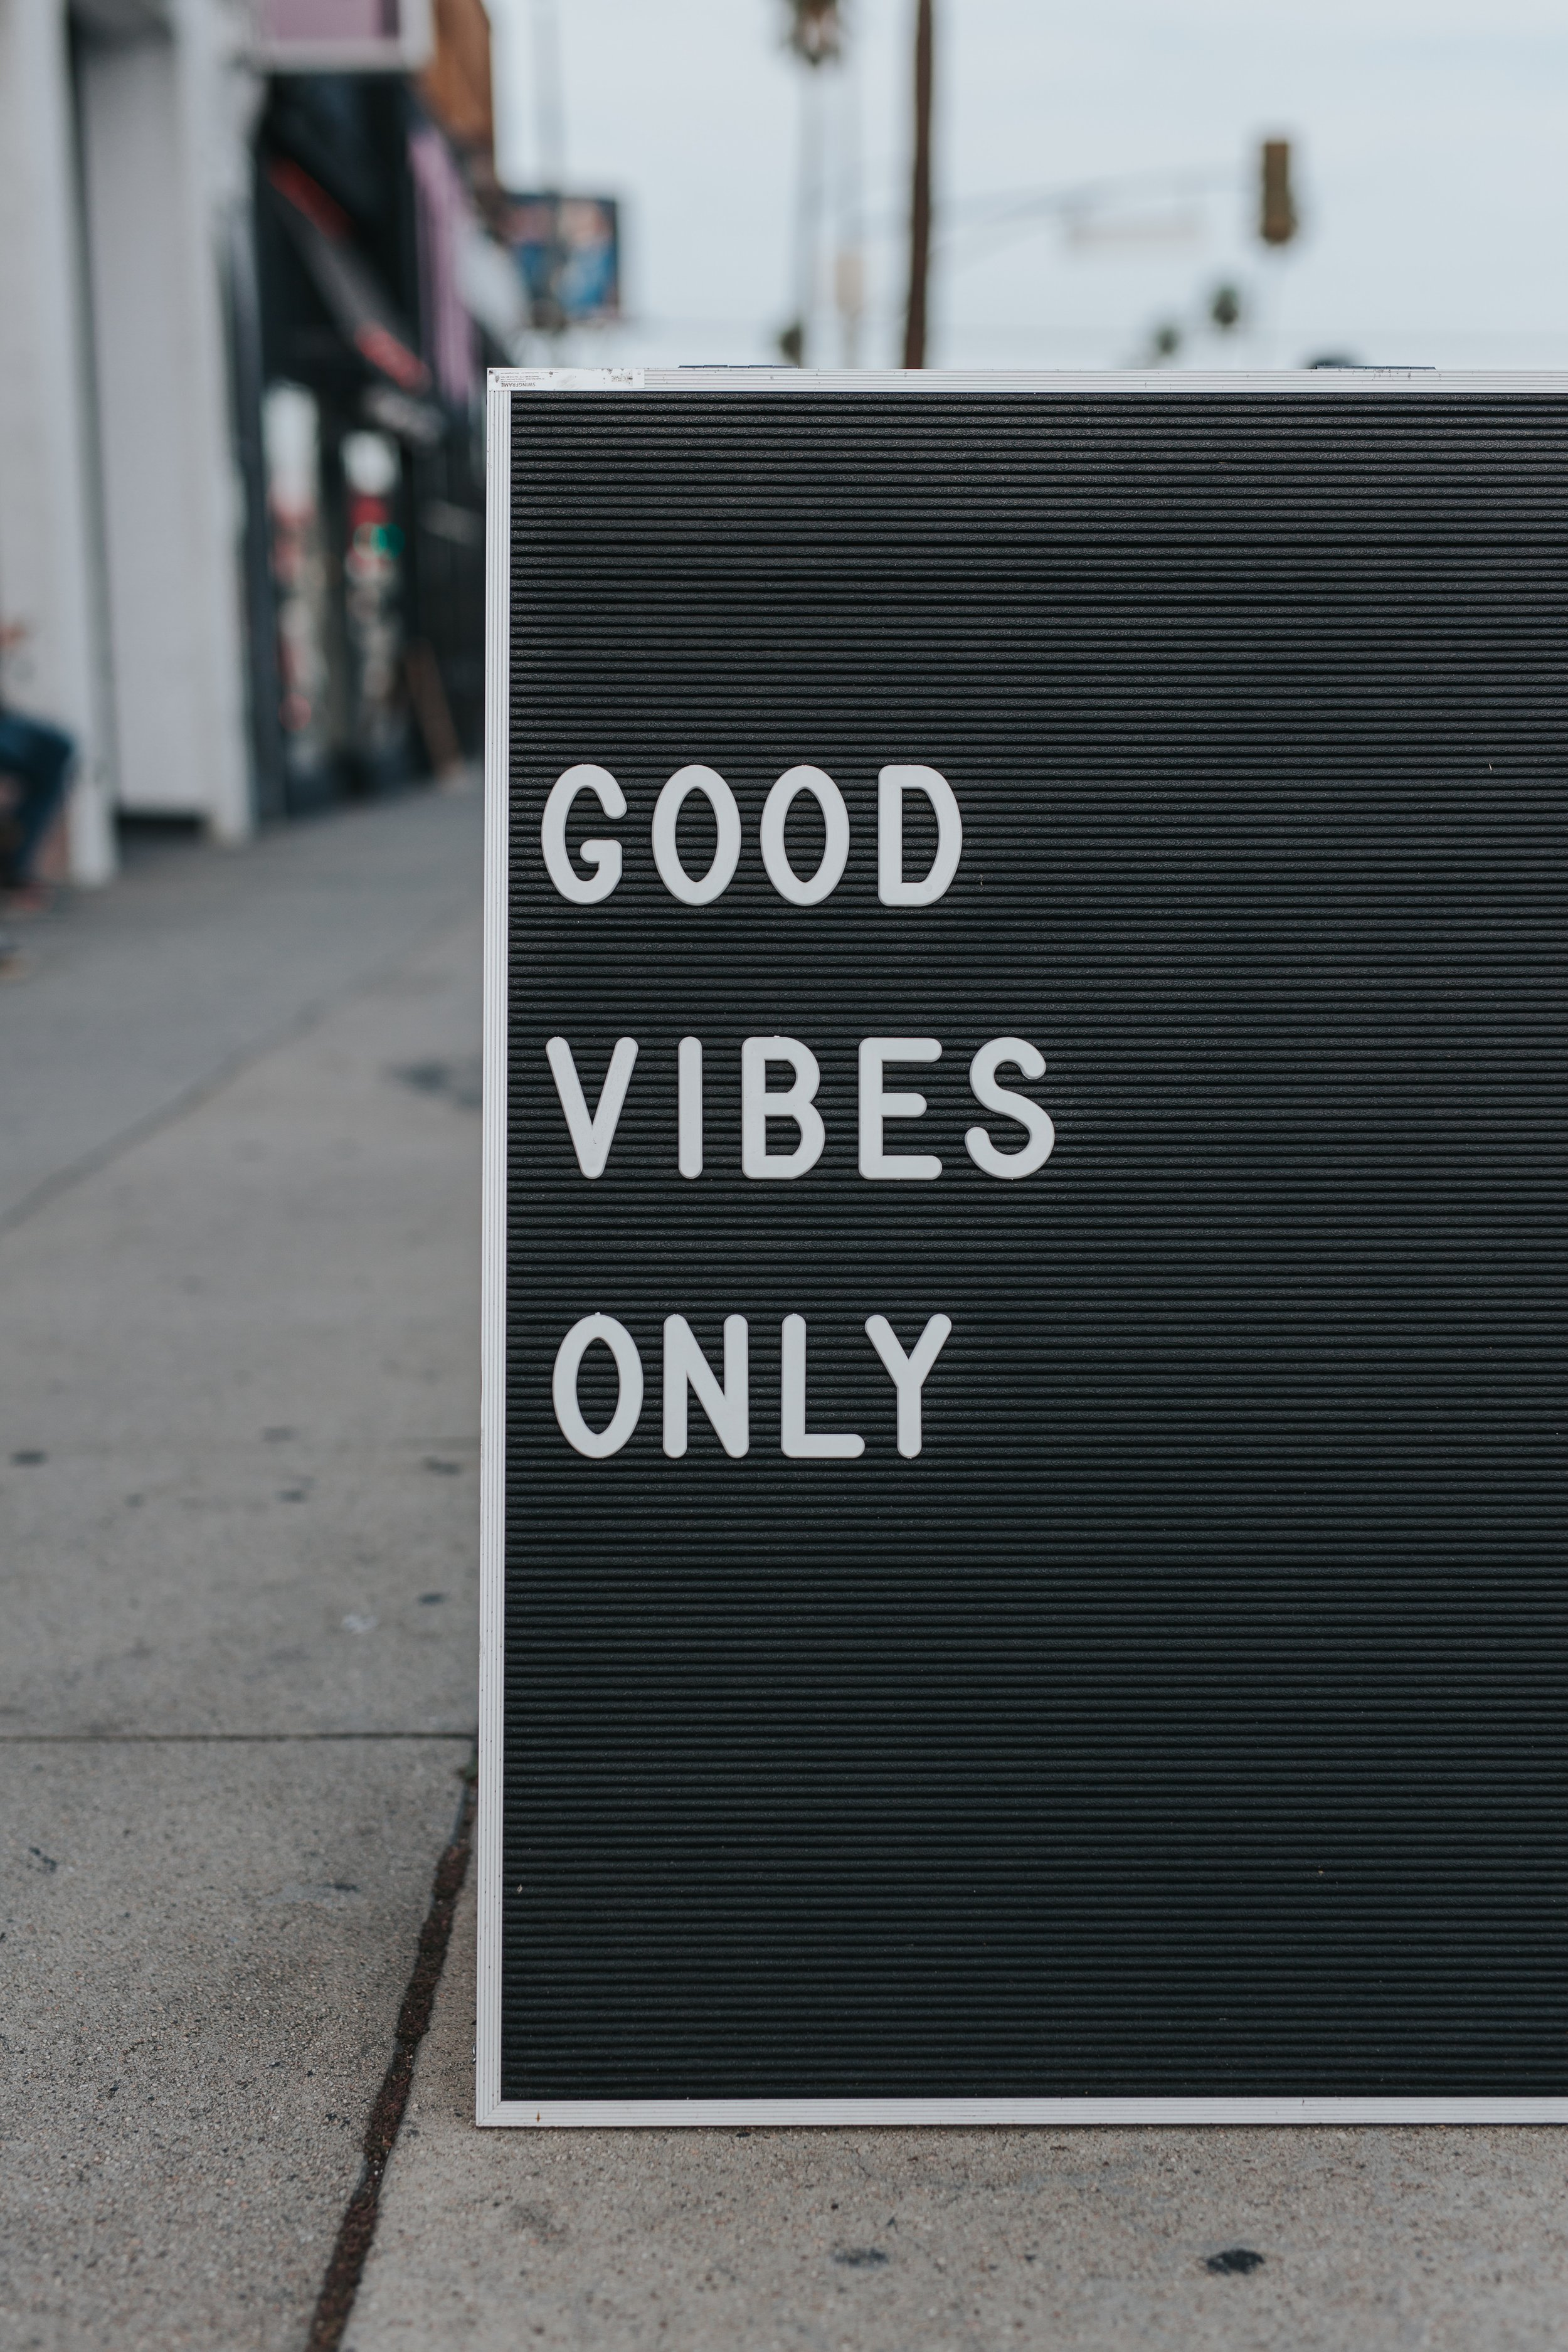 #rememberedpoetryslam good vibes for all! Photo by Mark Adrian on Unsplash